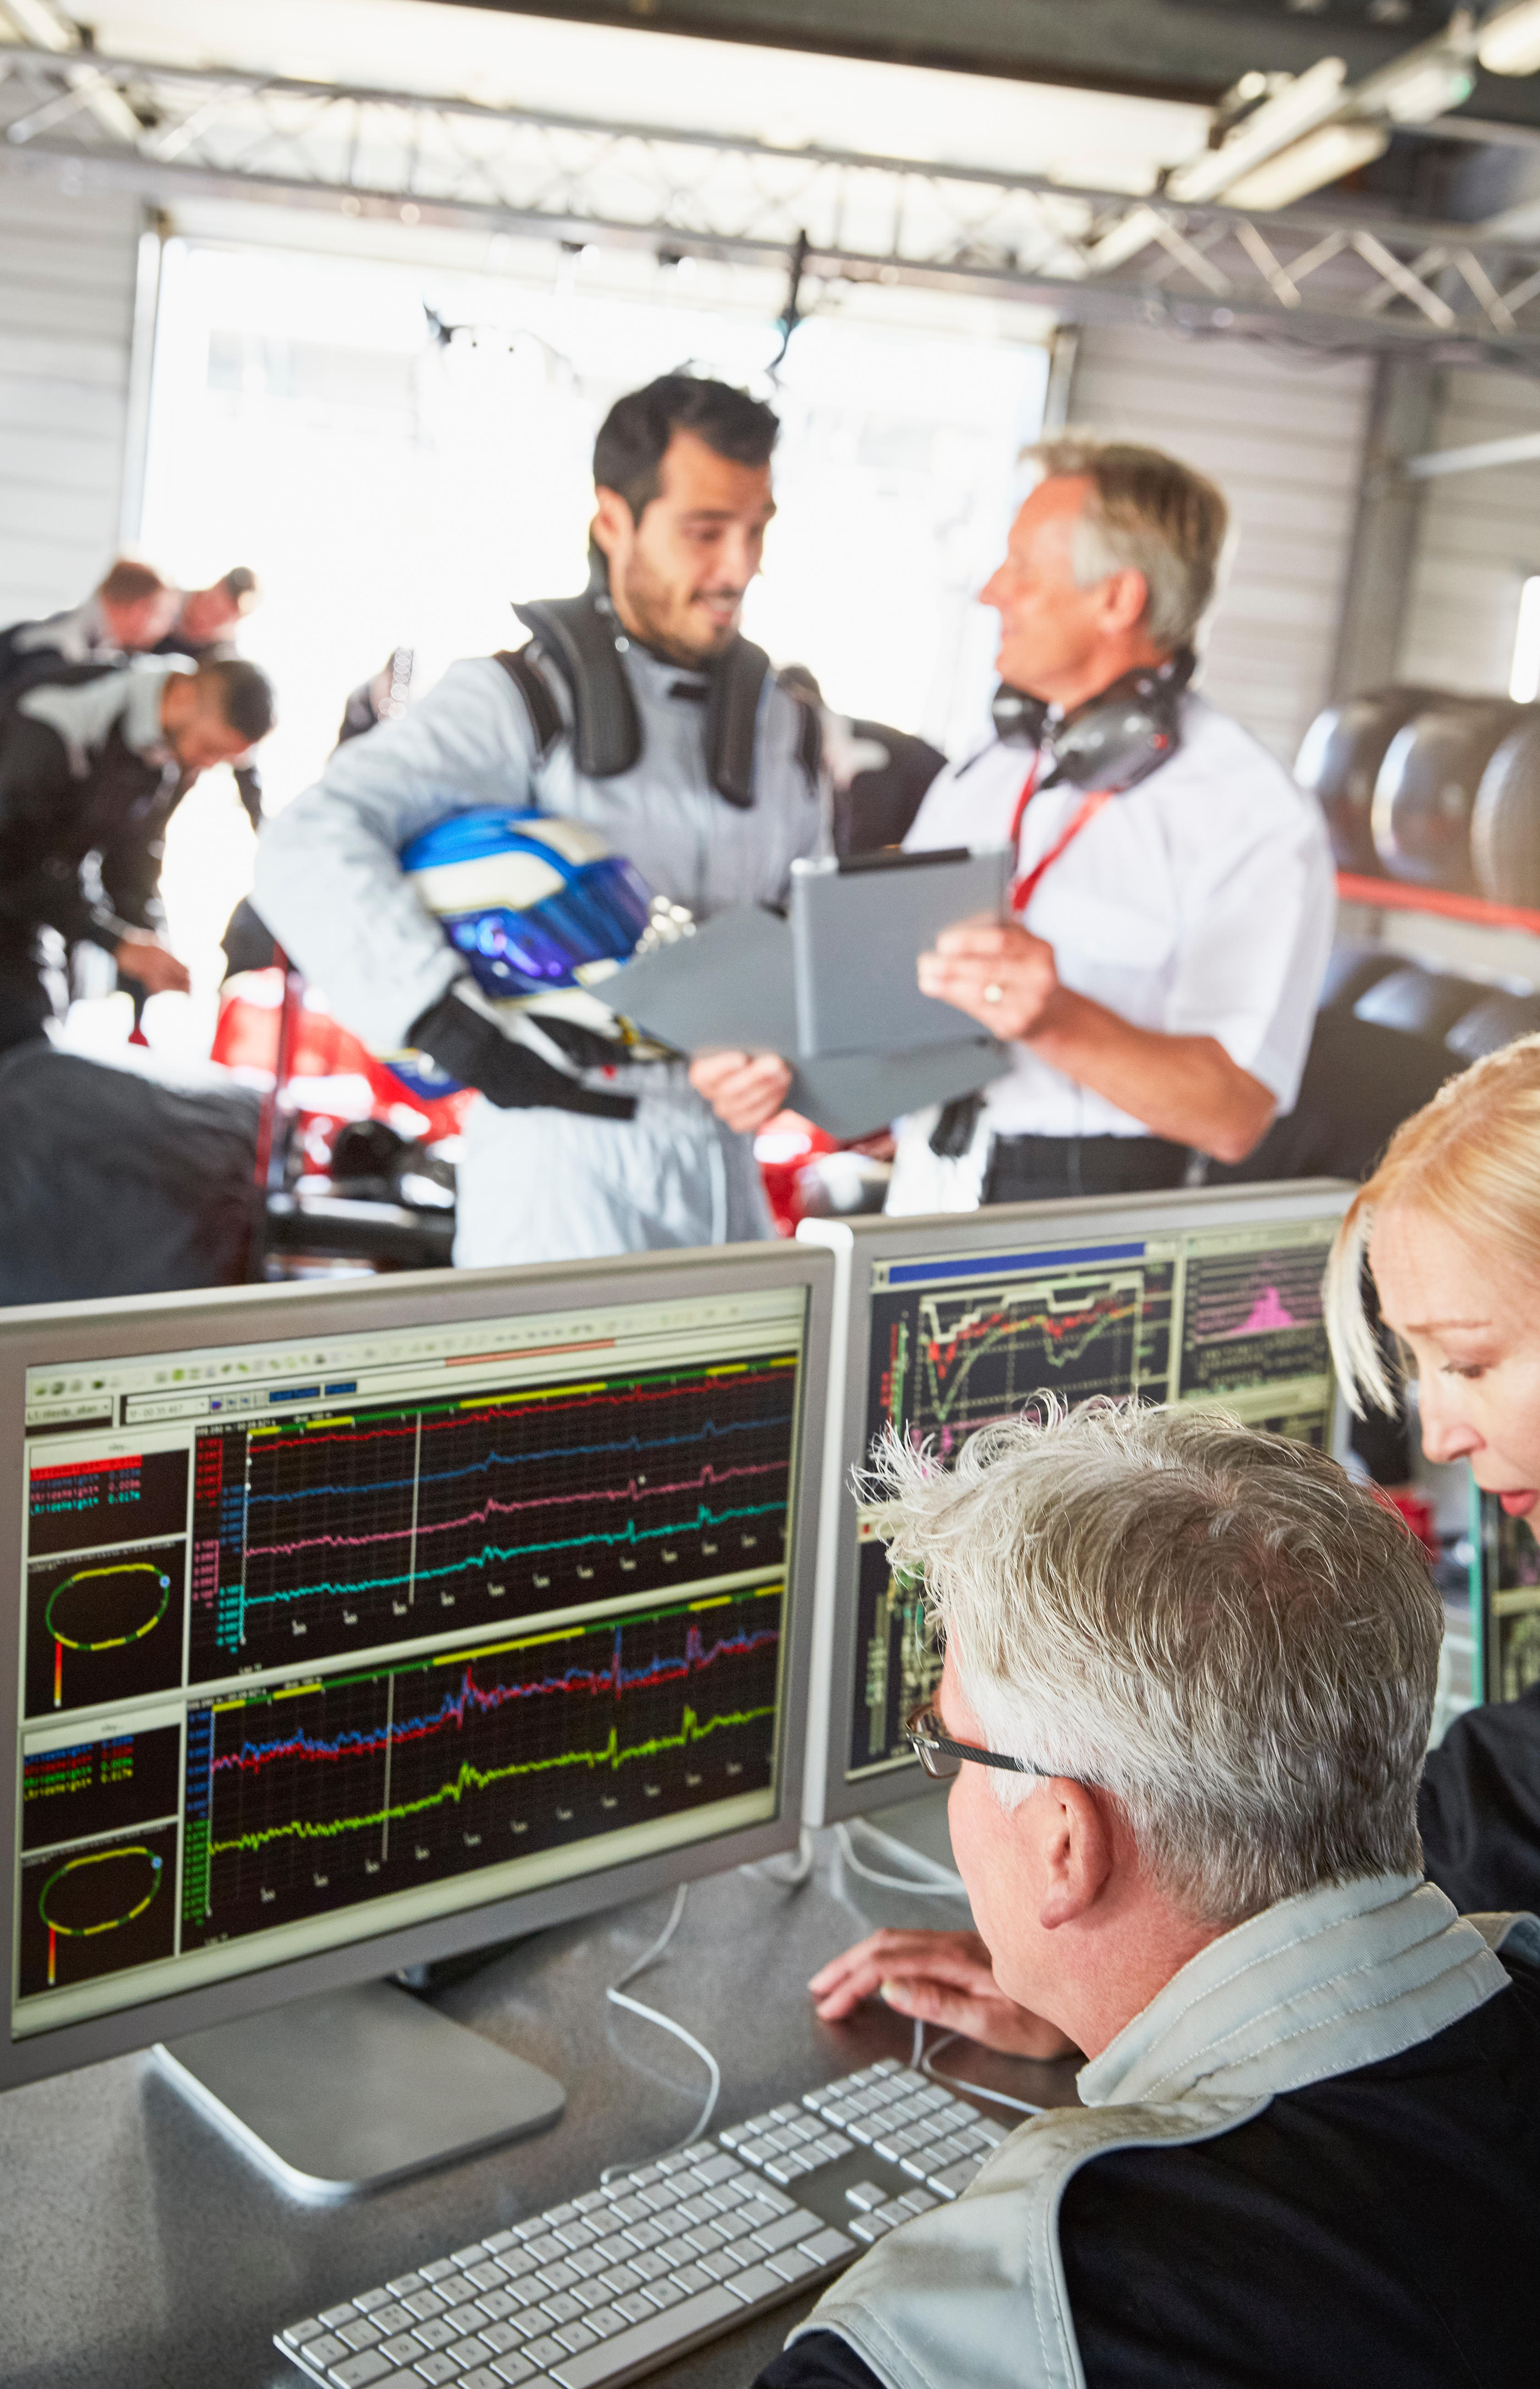 F1® and aerospace are two fields that are often compared to each other, less so with the resources sector – but are the similarities greater than the differences?